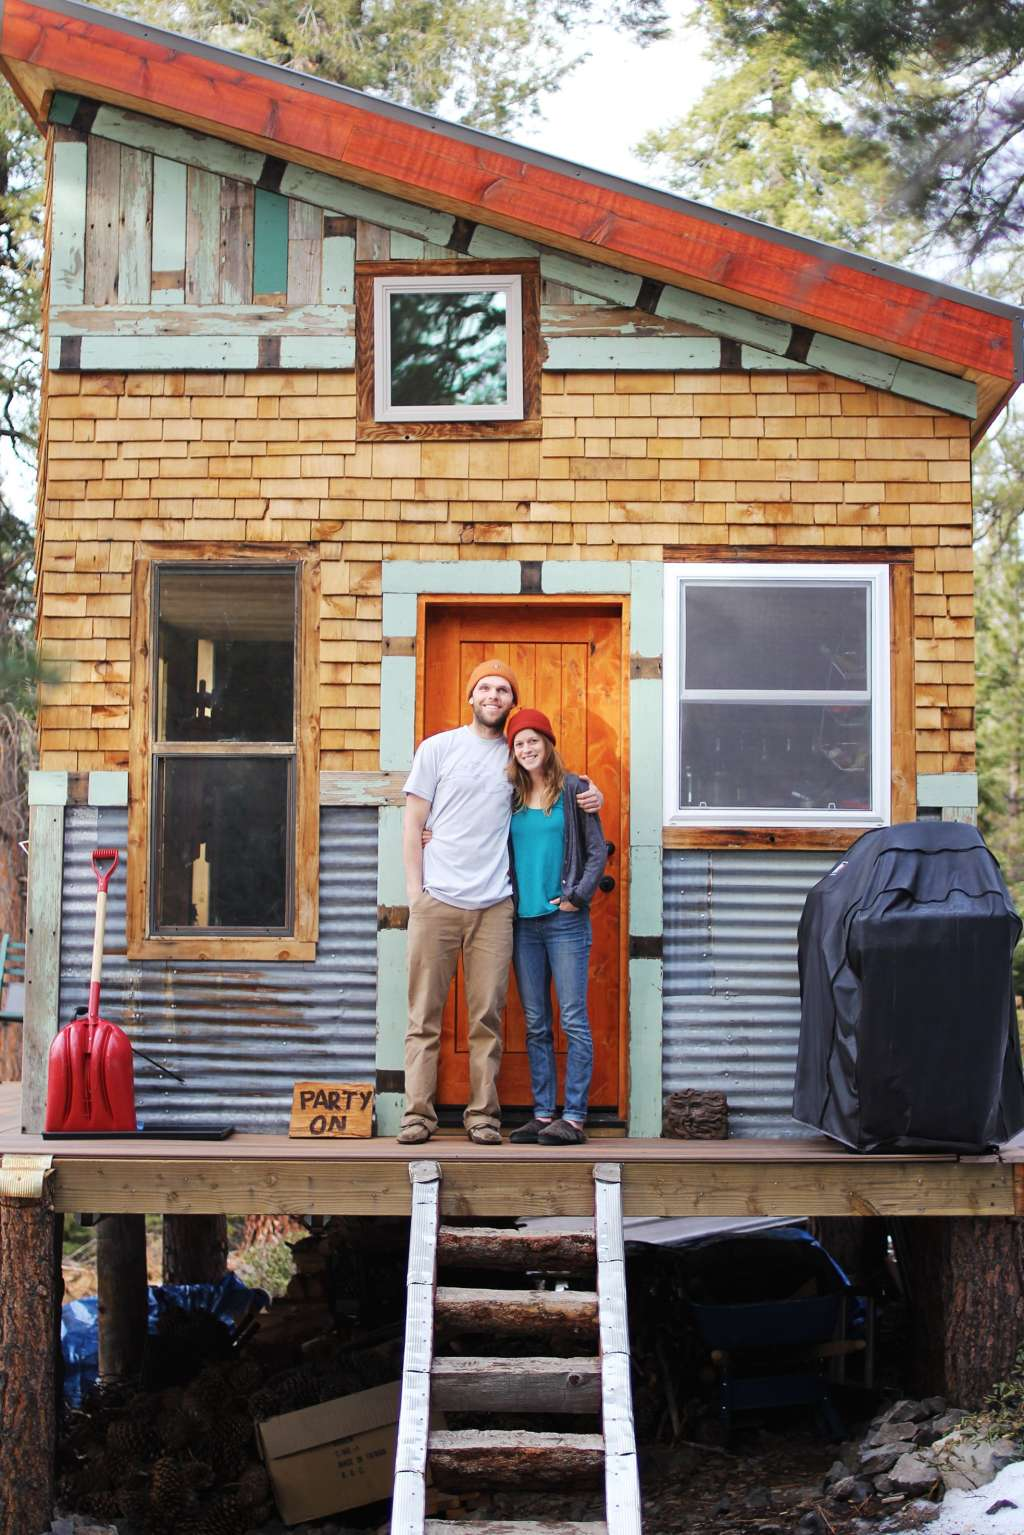 House Tour: A DIY Self-Sustainable Micro-Cabin in Cali